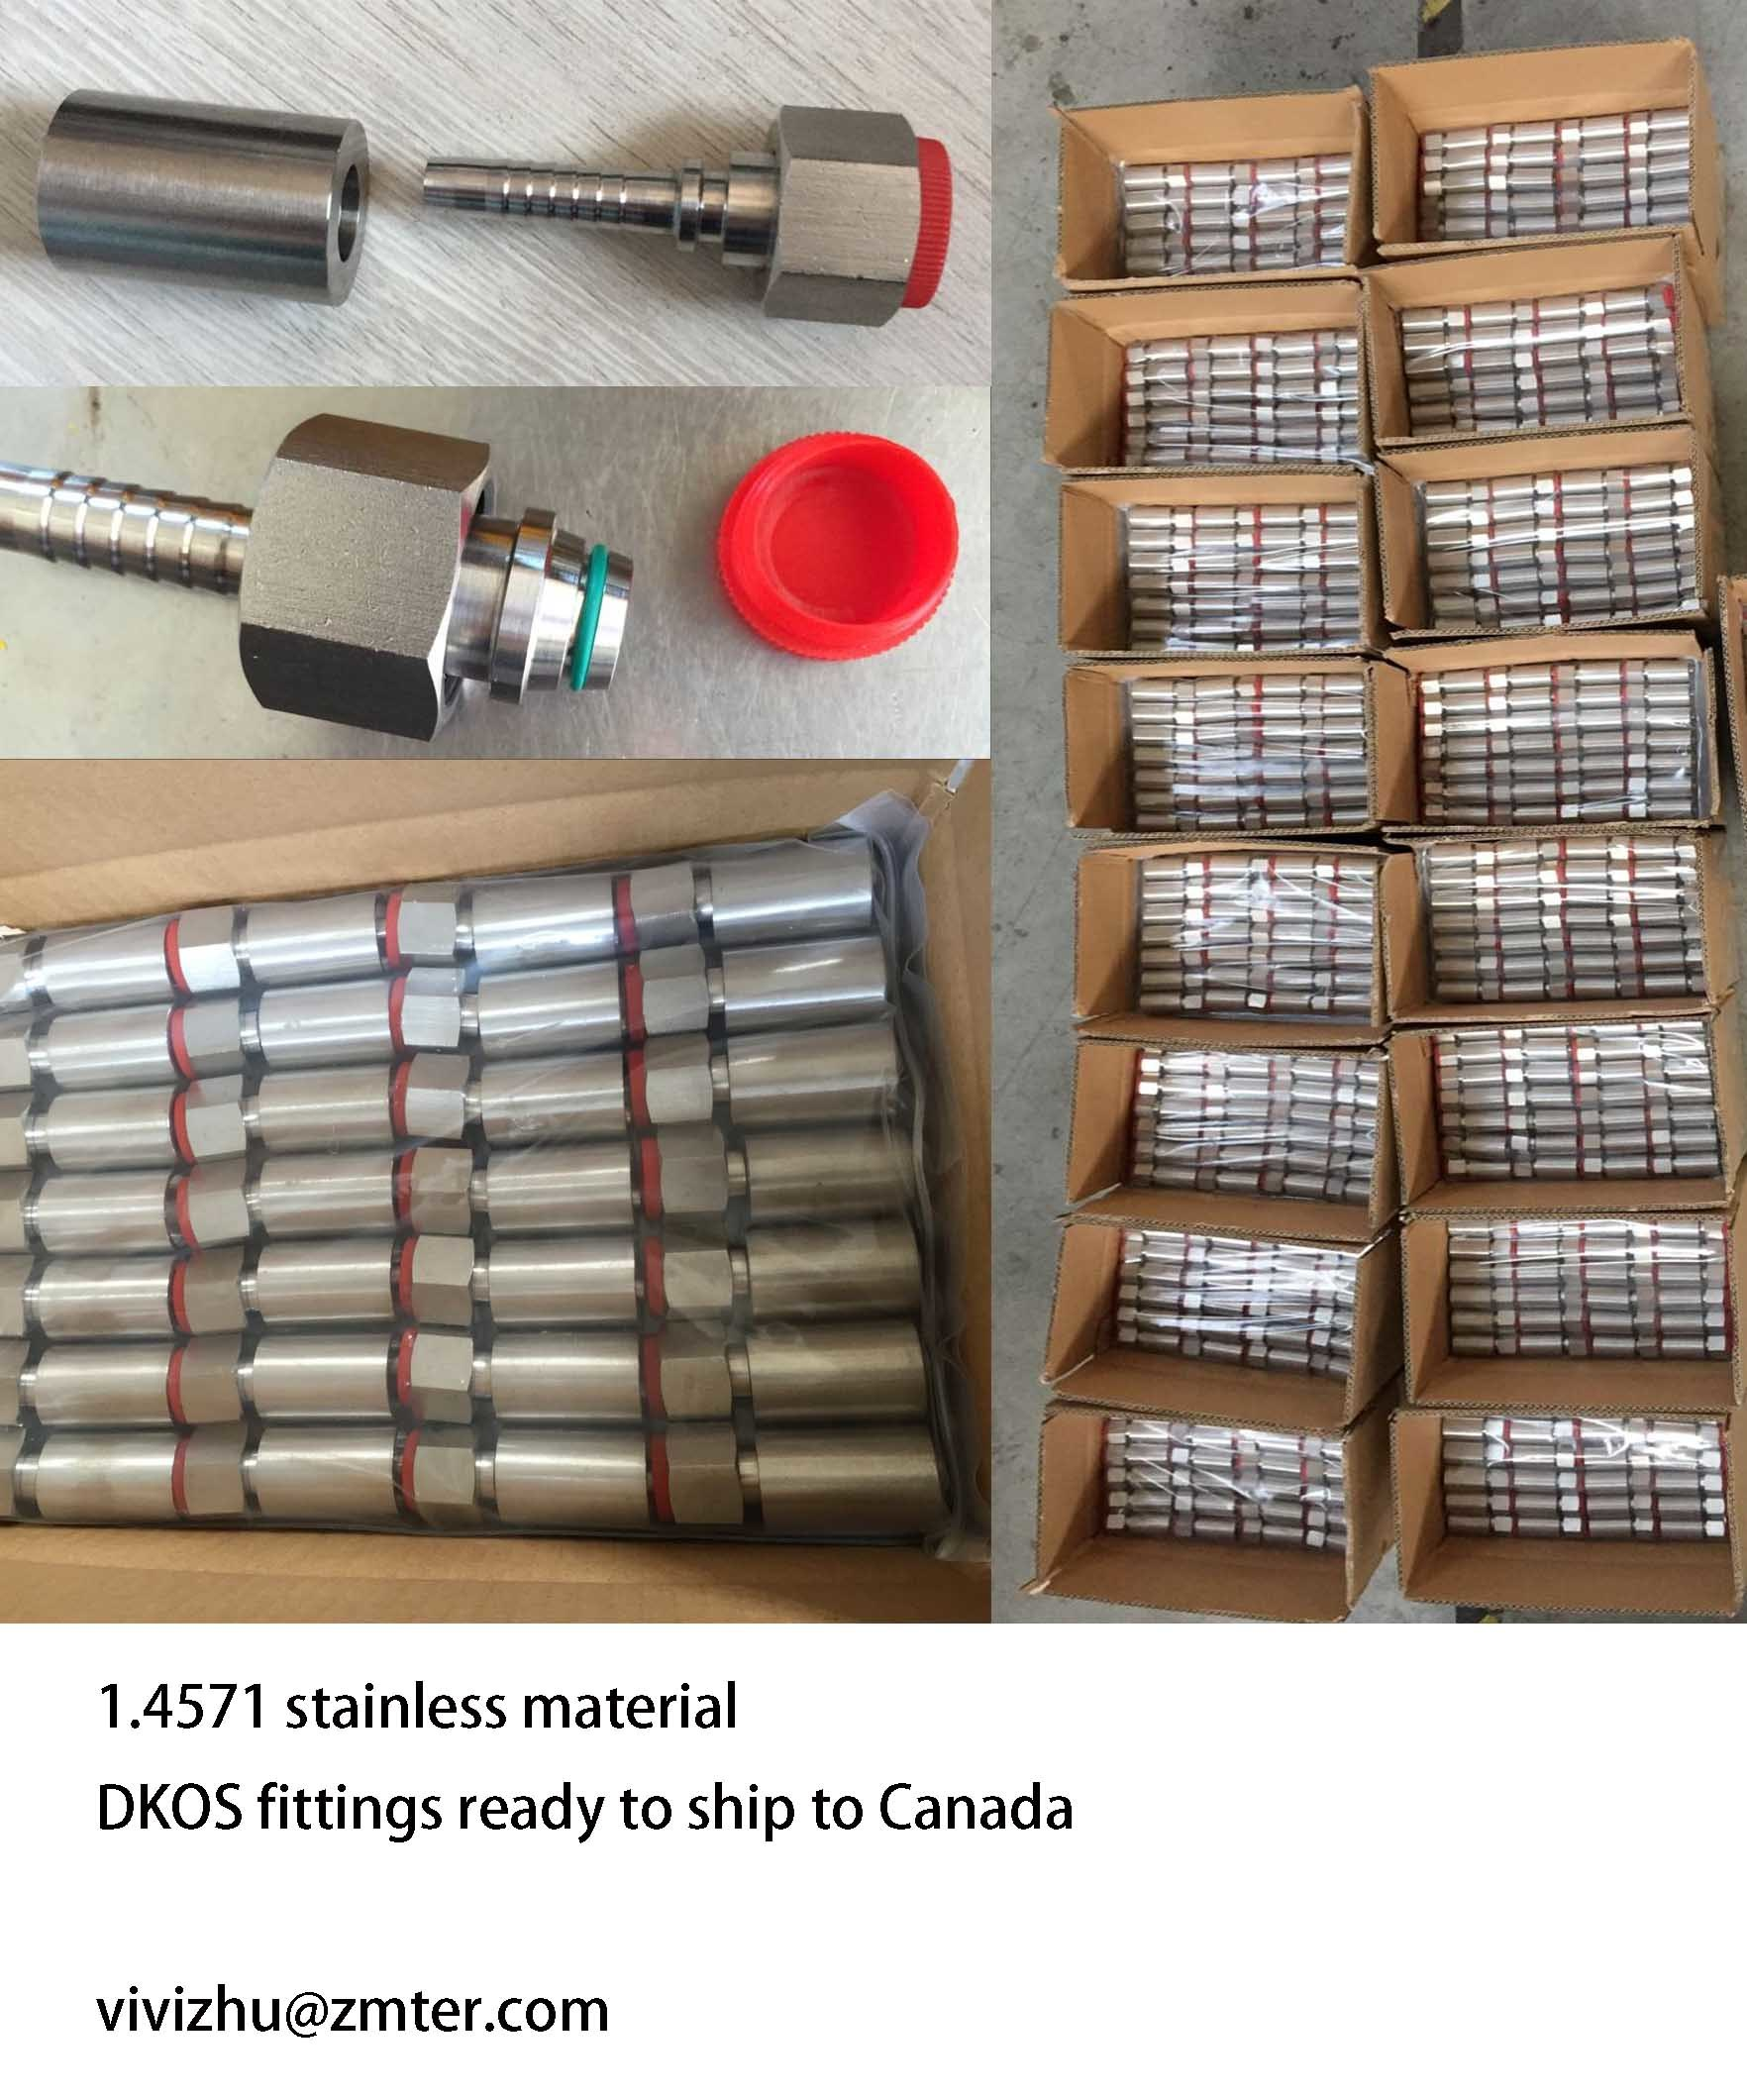 Bsp, NPT, Jic, Ofrs, Metric Hydraulic Fittings pictures & photos